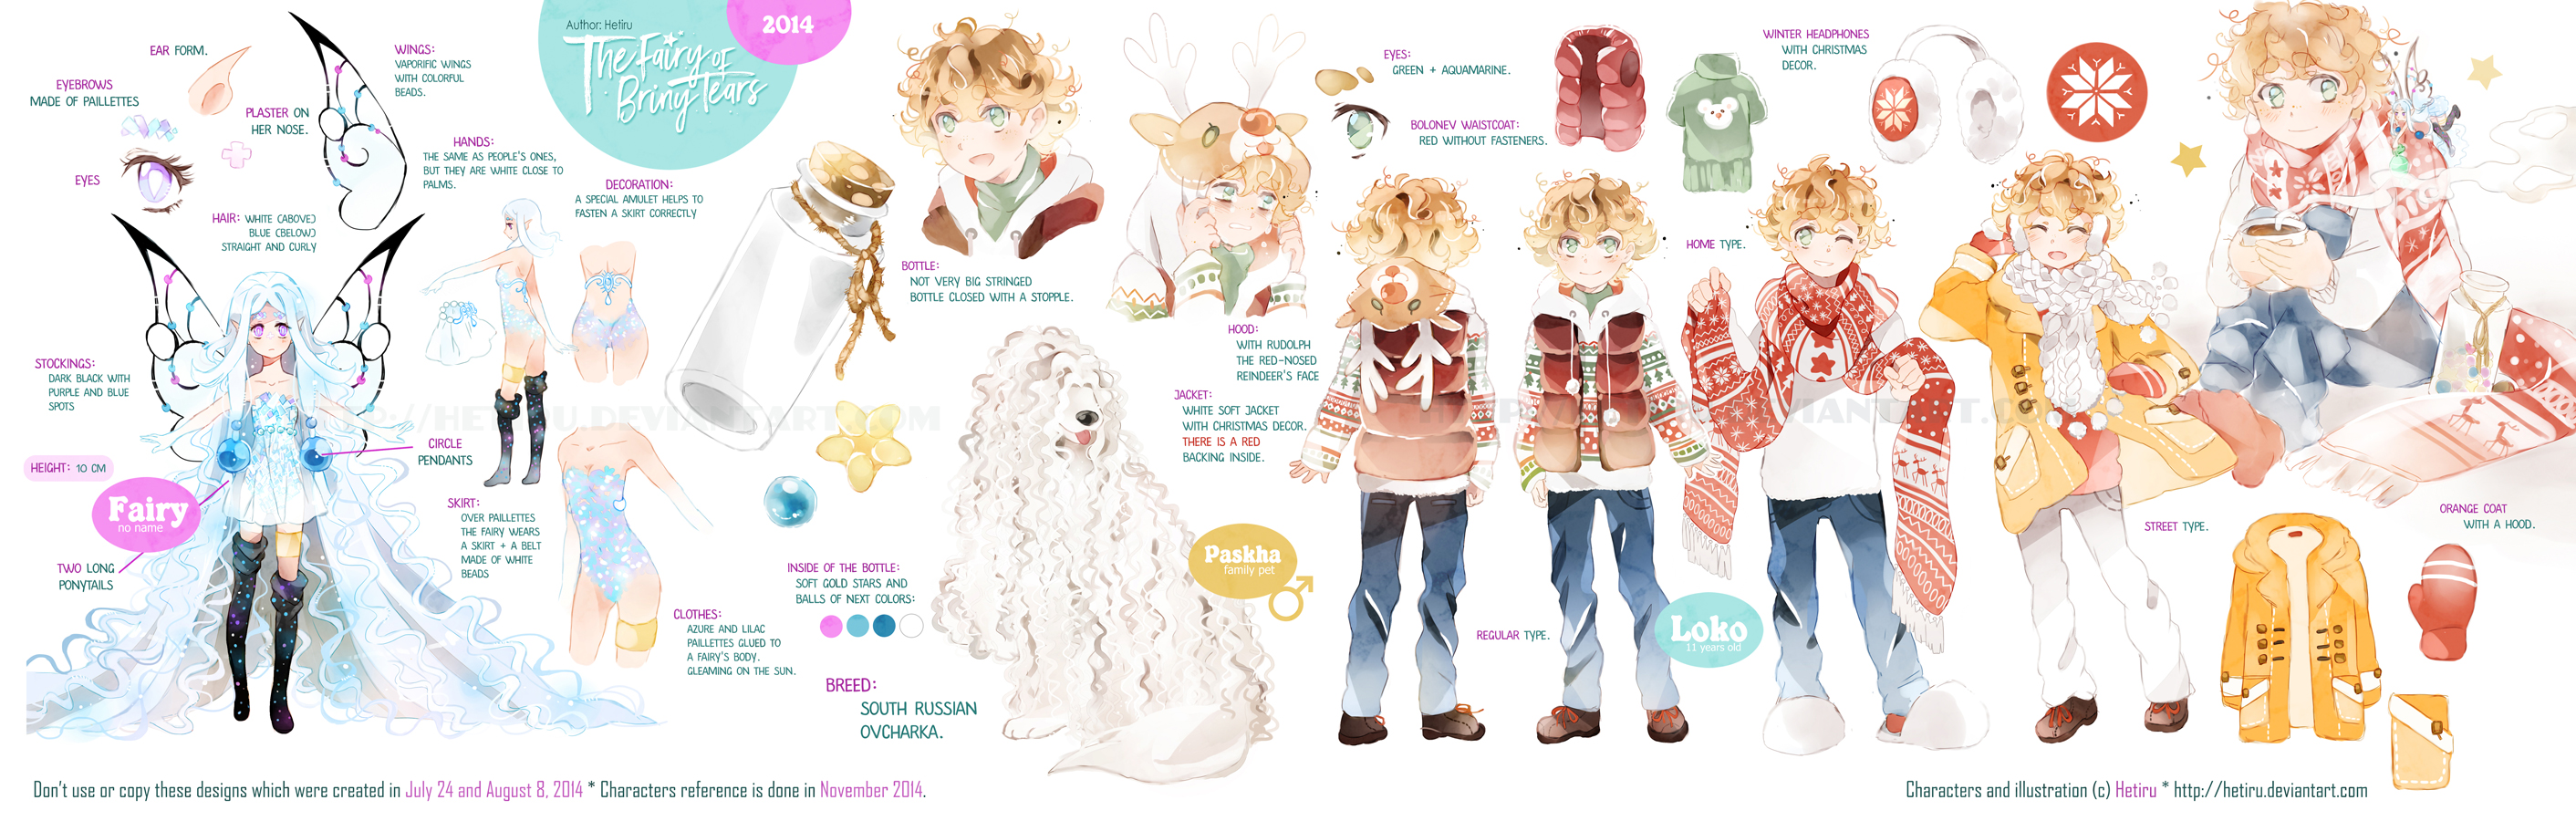 .The fairy of briny tears: CHARACTERS REFERENCE.